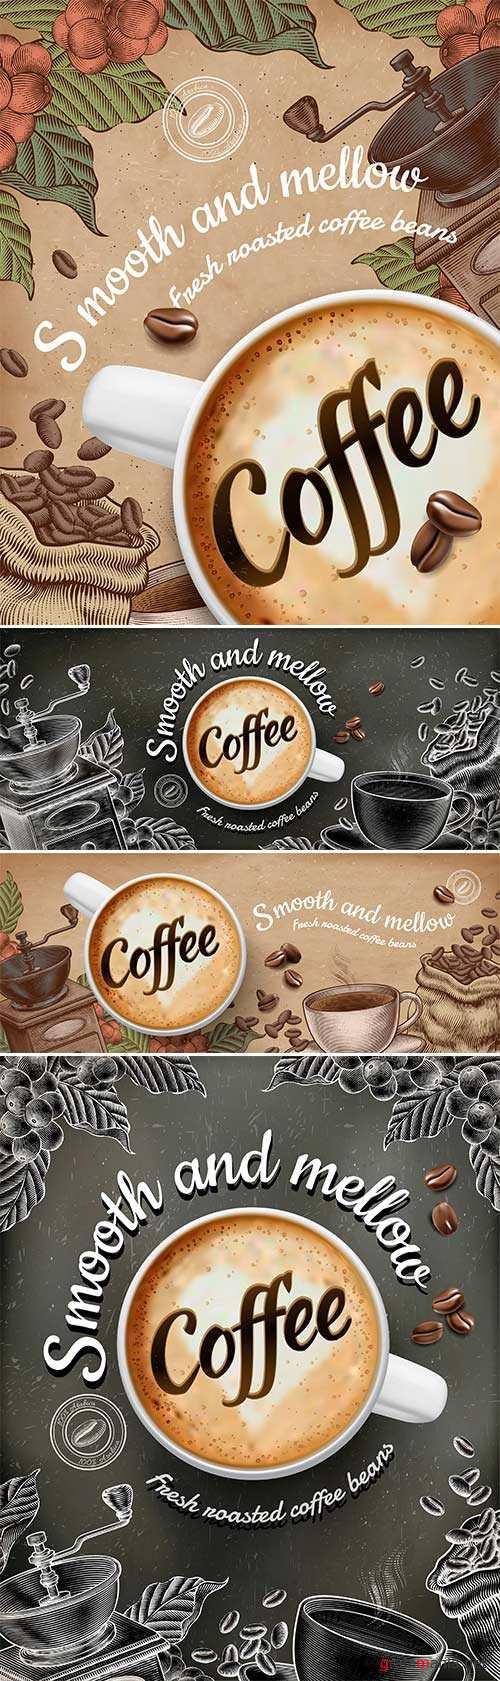 Coffee poster ads with 3d vector illustratin latte